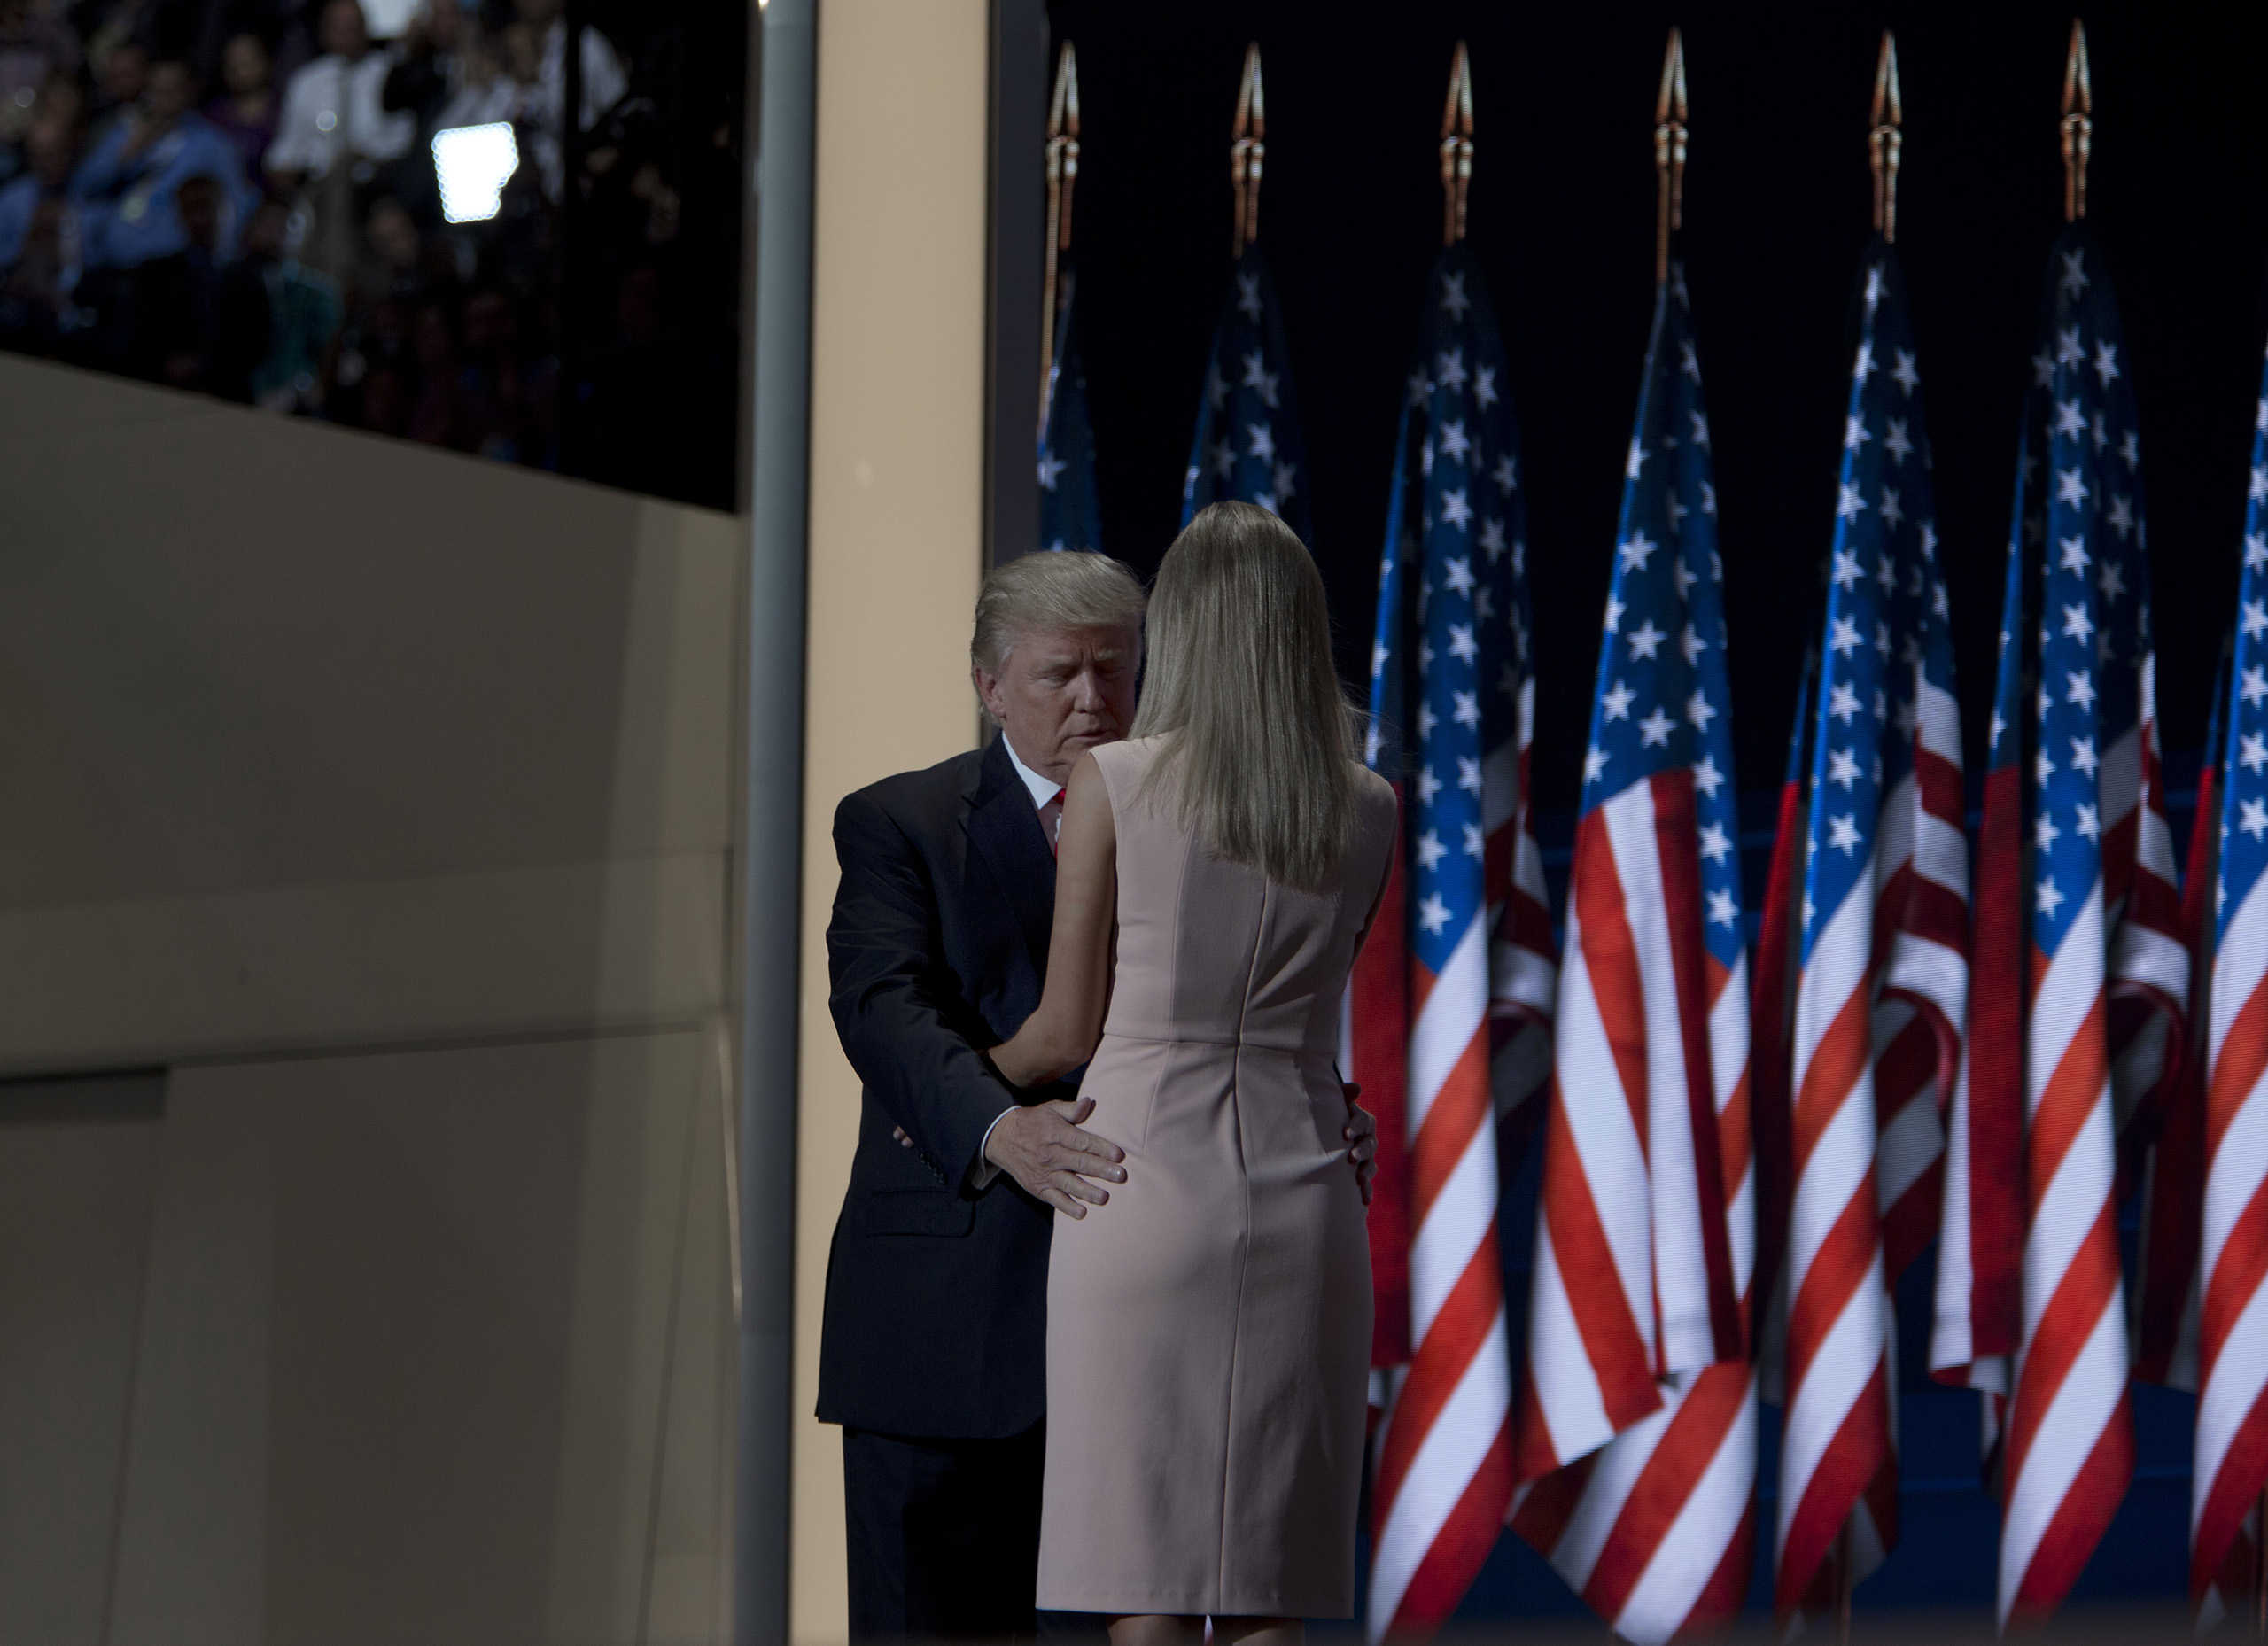 Republican presidential candidate Donald Trump and greets his daughter Ivanka onstage at the Republican National Convention on July 21, 2016 at the Quicken Loans Arena in Cleveland.